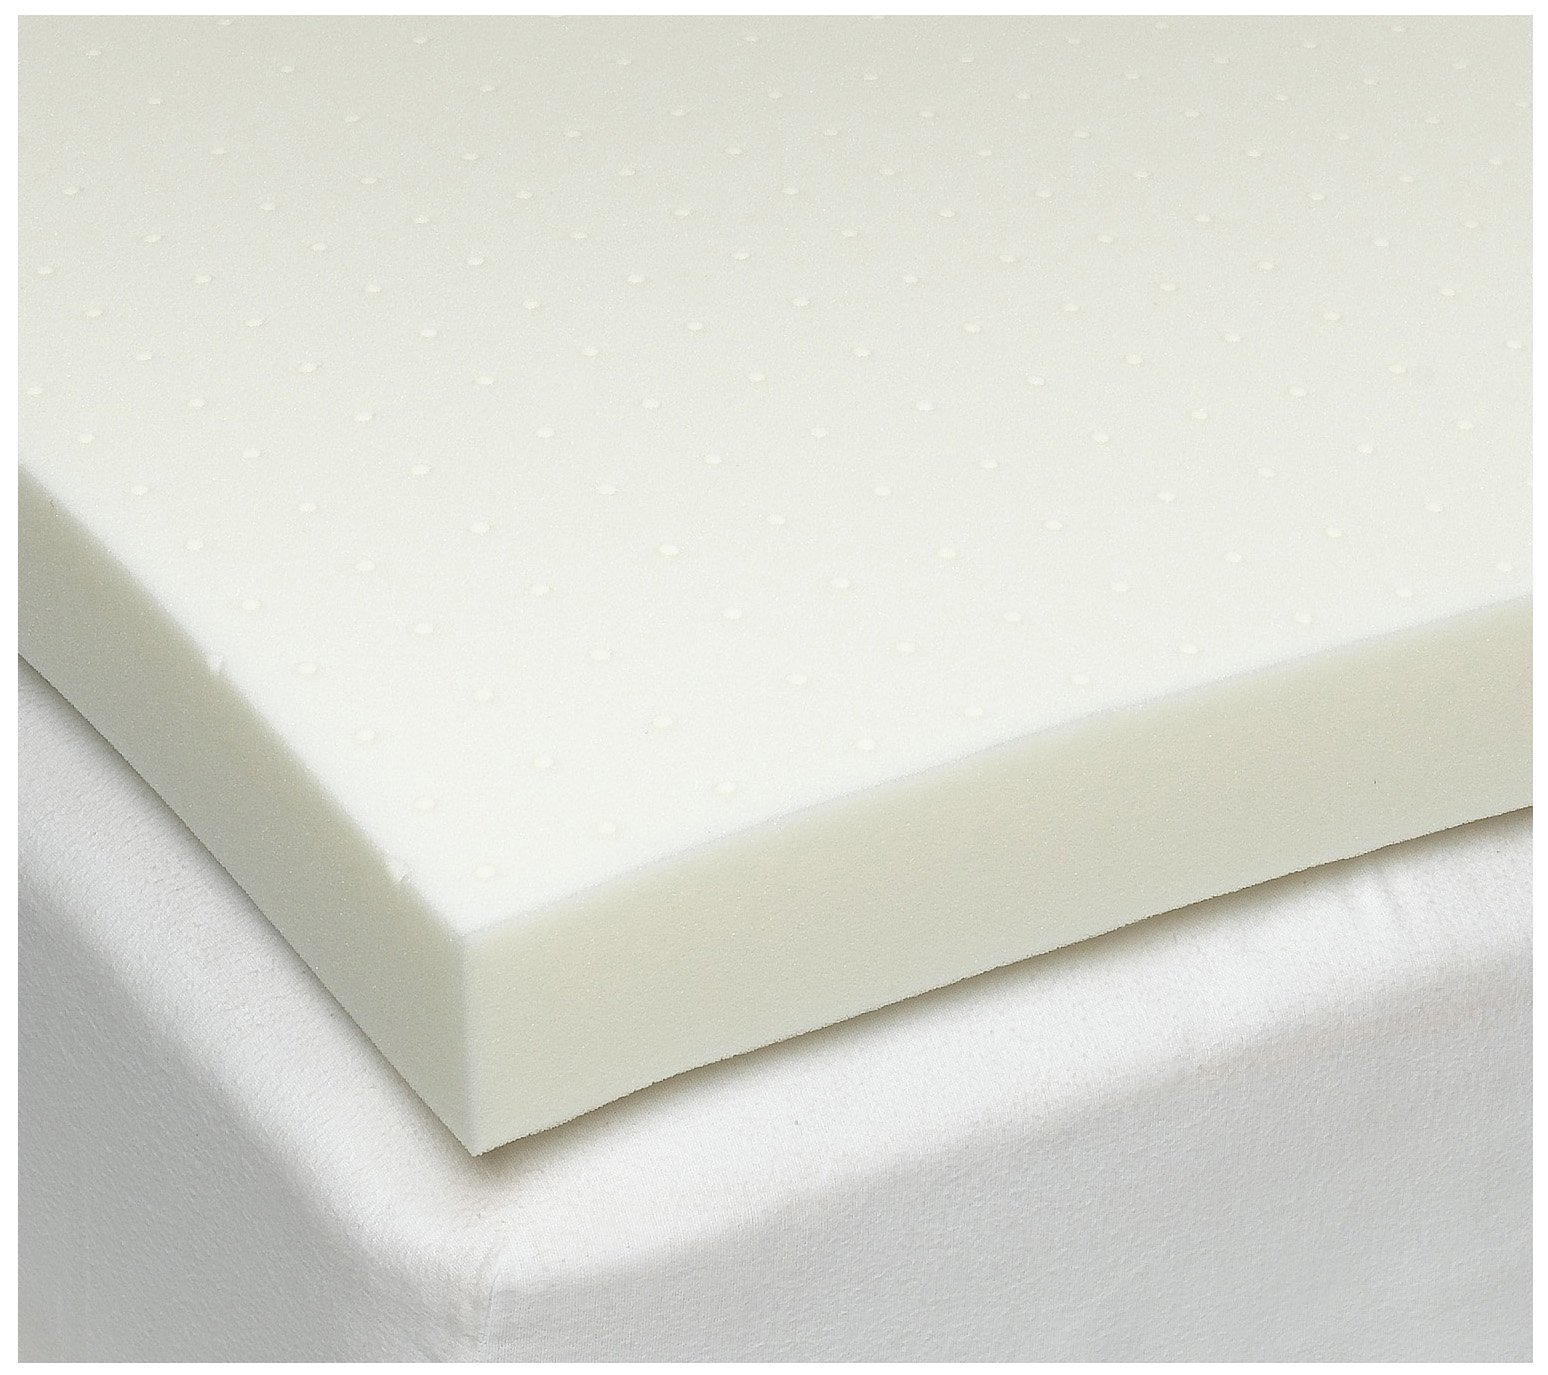 best mattress topper for side sleepers buying guide top 4